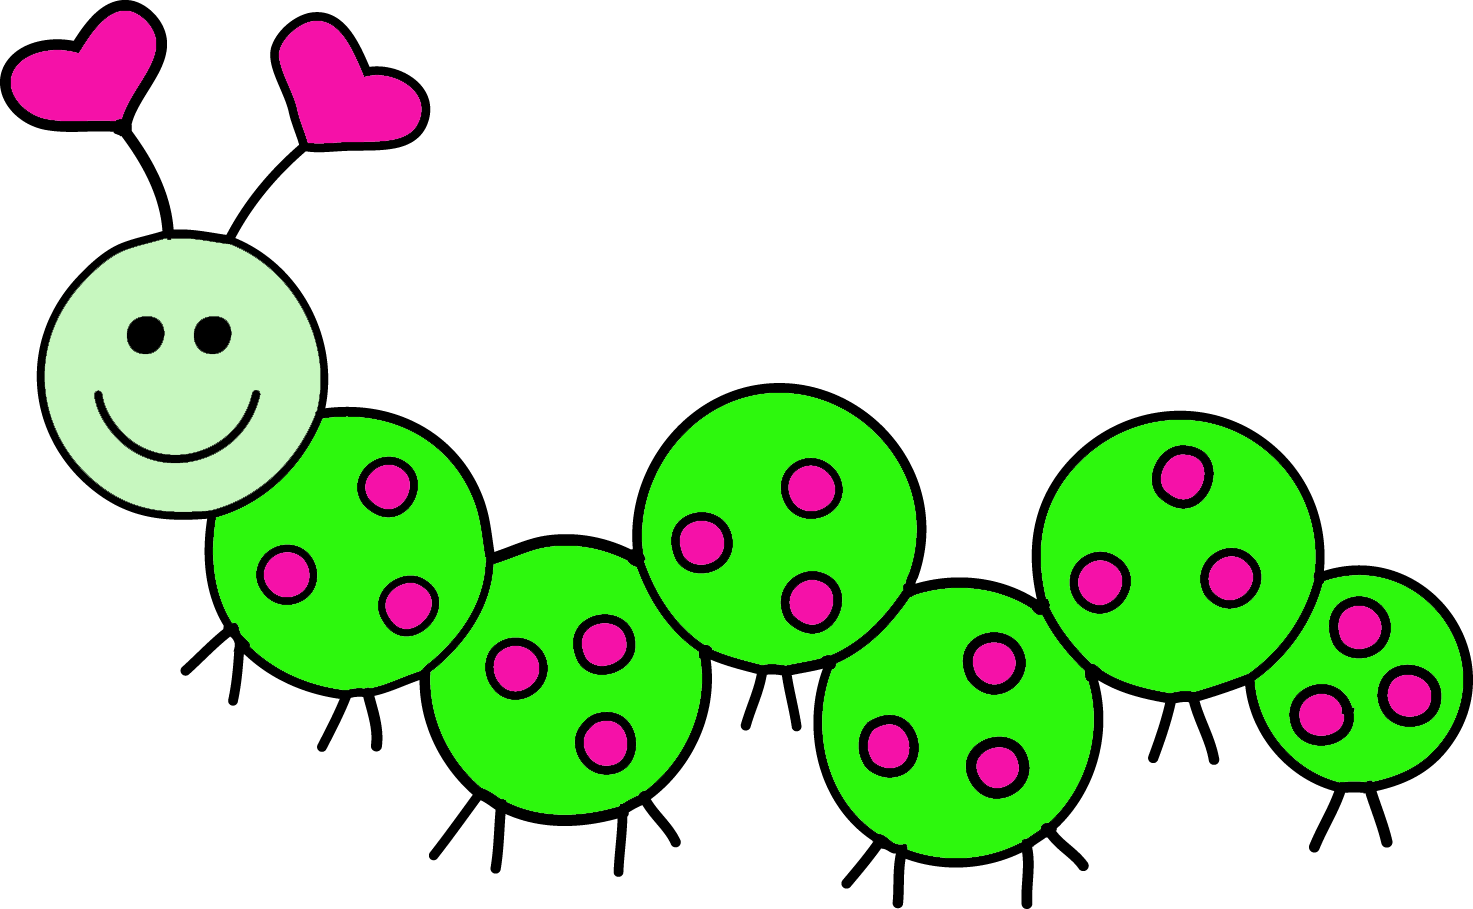 Caterpillar clipart #13, Download drawings